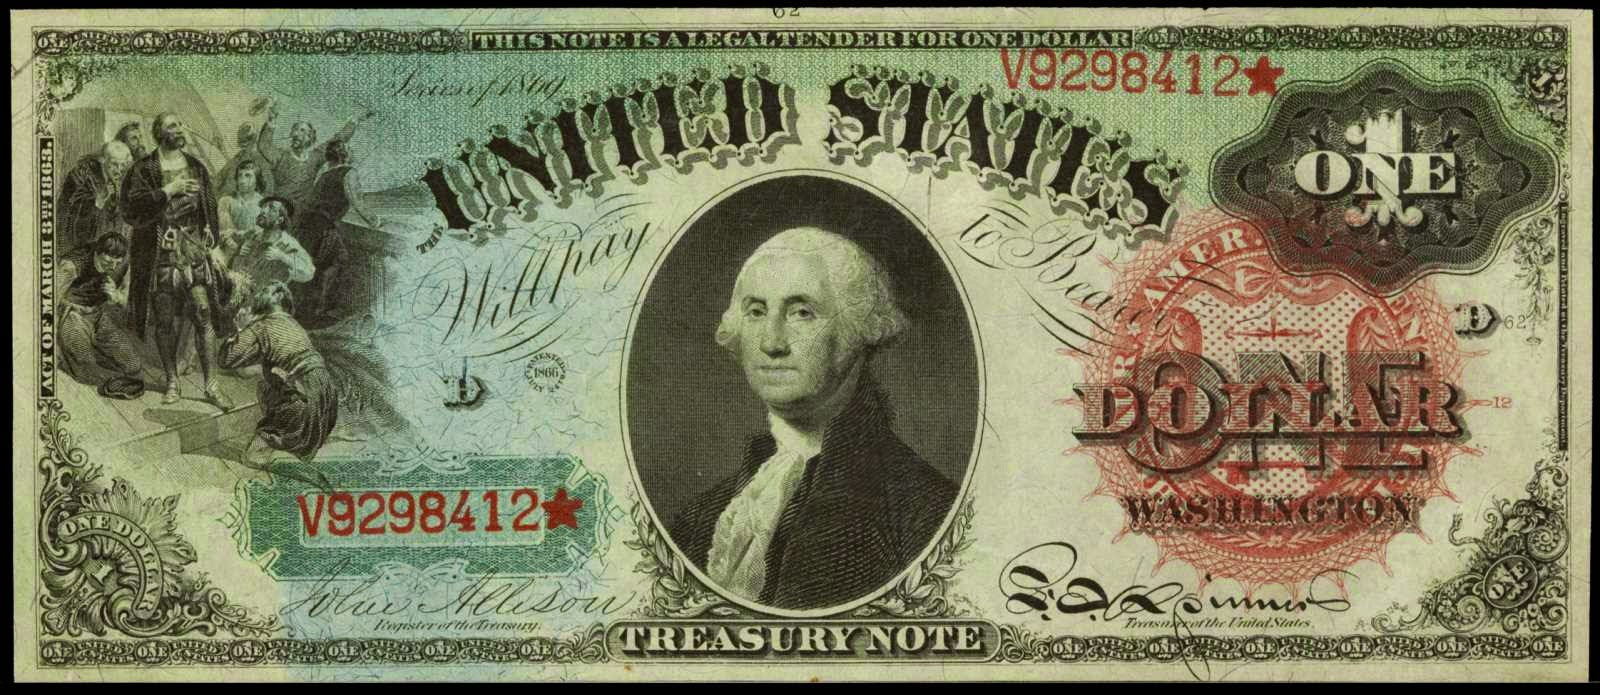 monetary design mystery: the nebulous origins of america's iconic